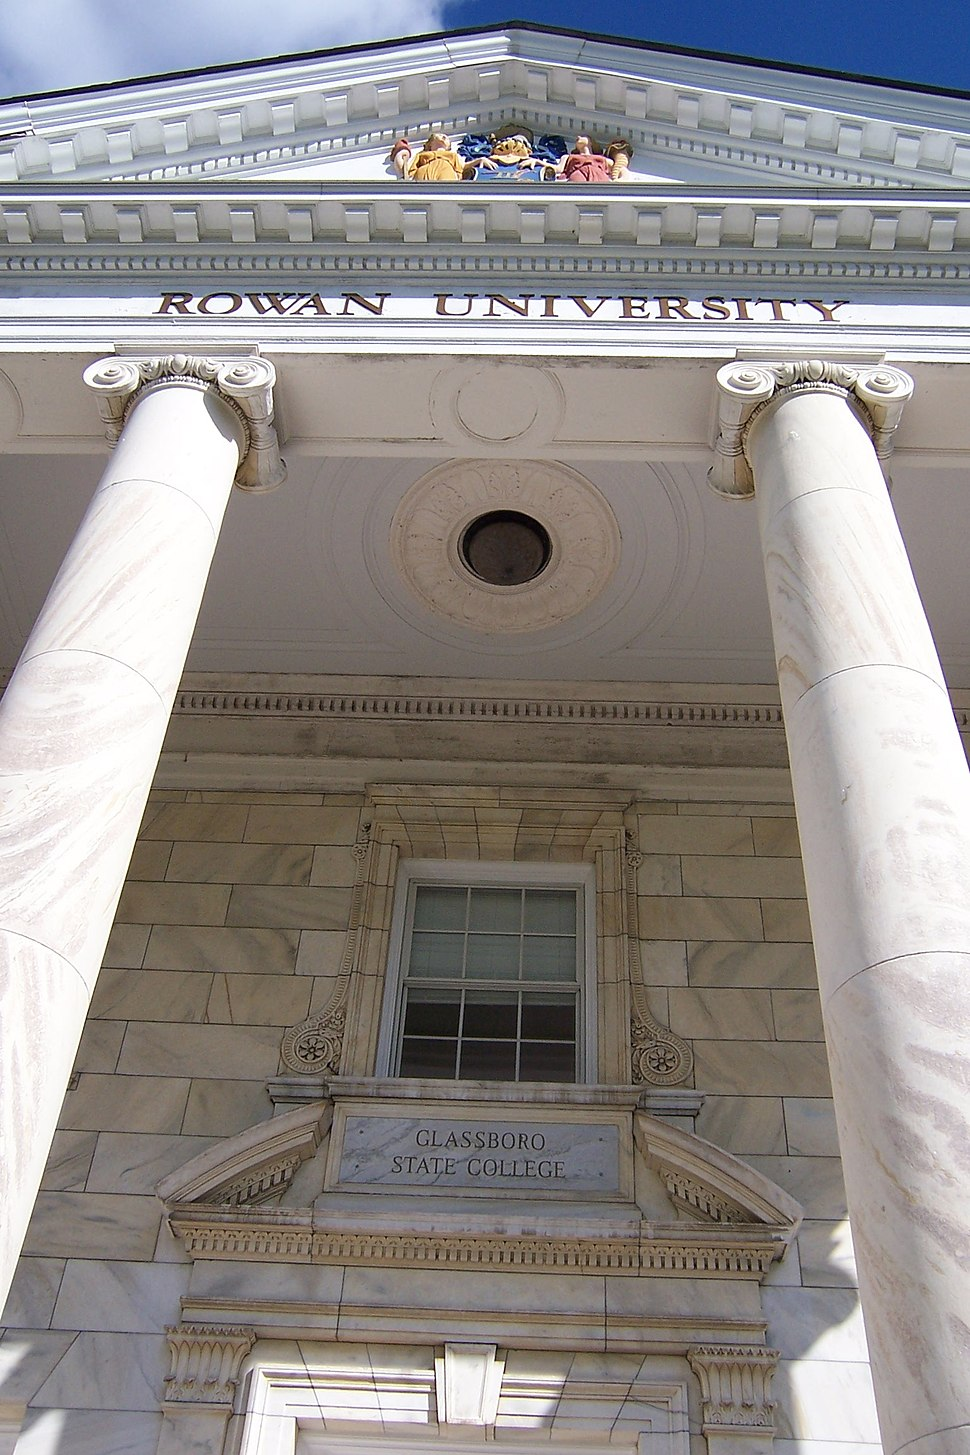 Rowan University, Bunce Hall facade with two names (Glassboro State College and Rowan University)